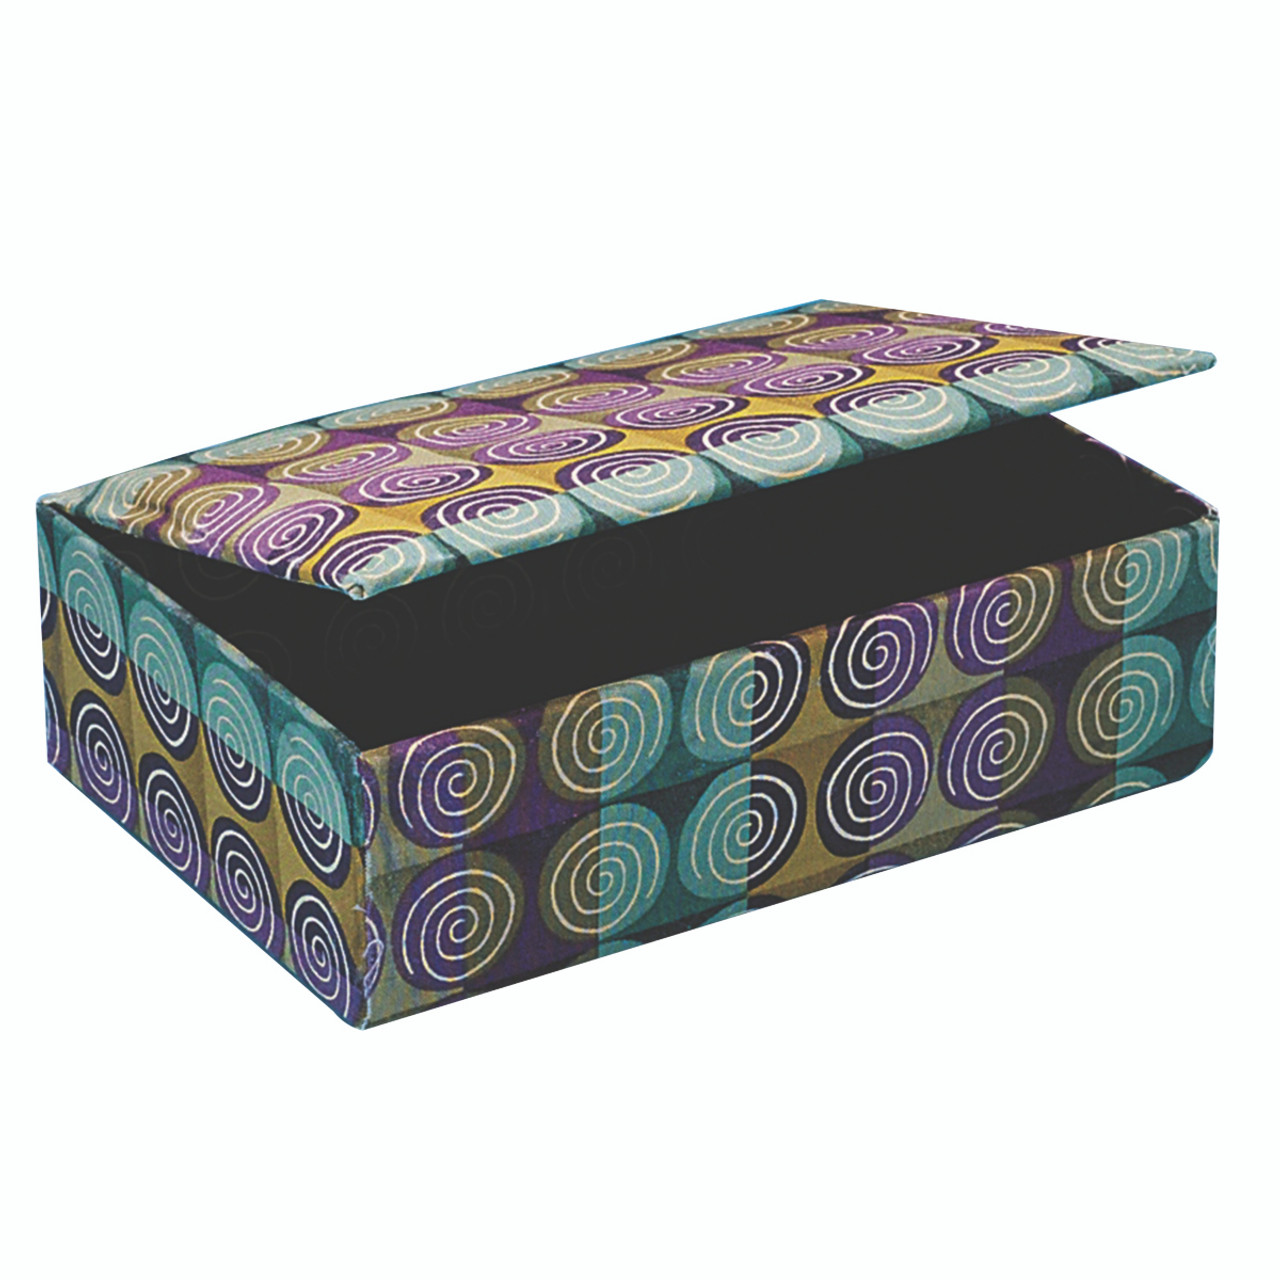 Allen Diagnostic Module Fabric Covered Box, Pack of 6